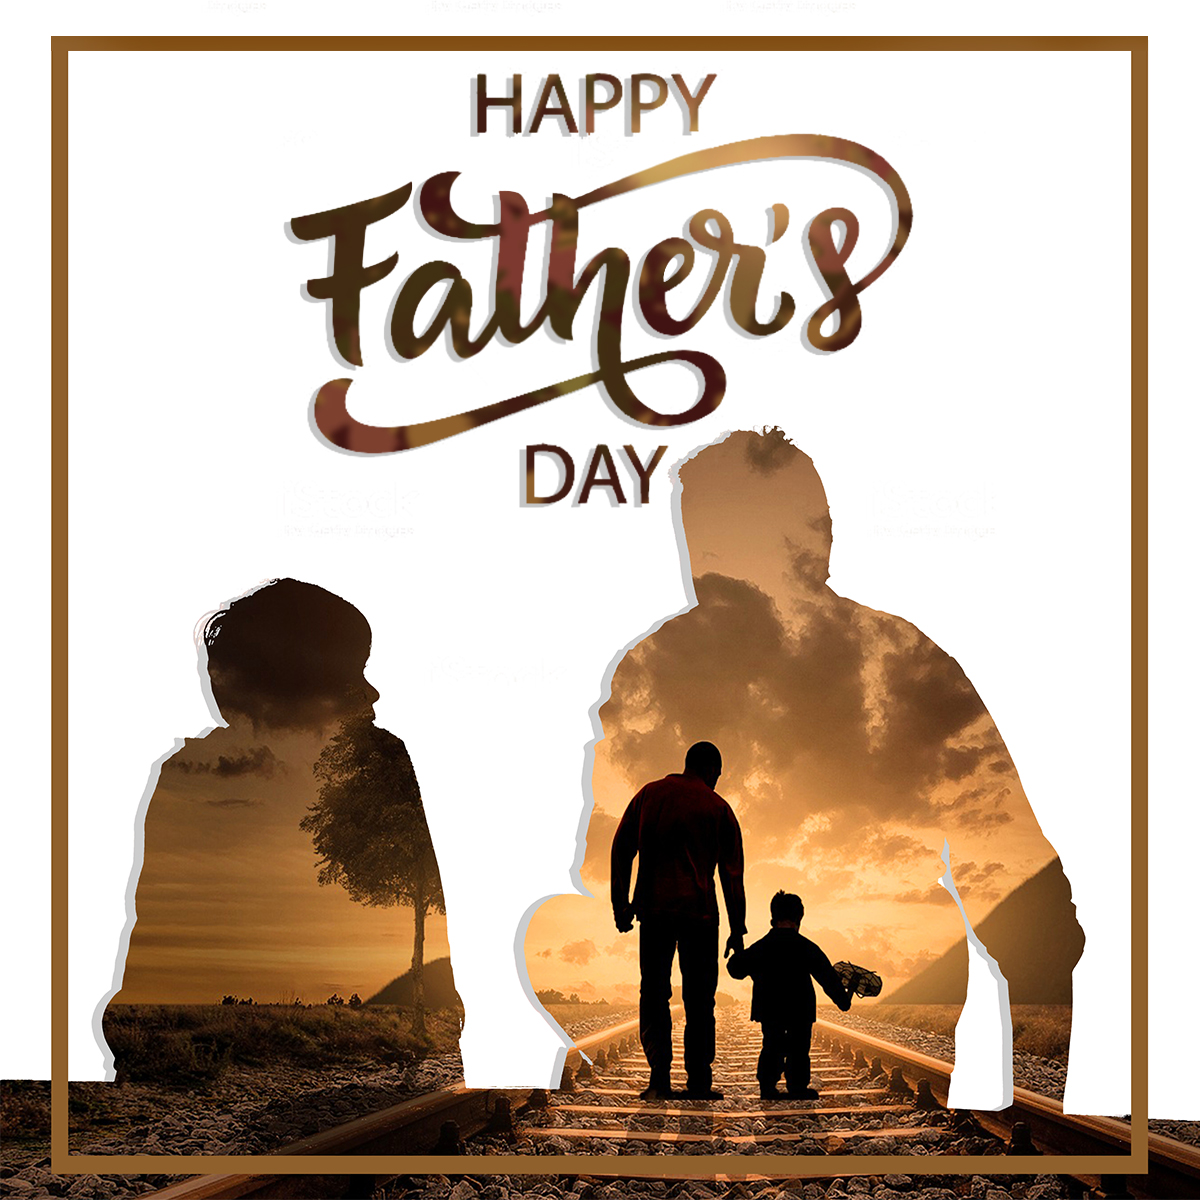 Happy Father's Day!🥳 https://t.co/uZ96aFHXkN